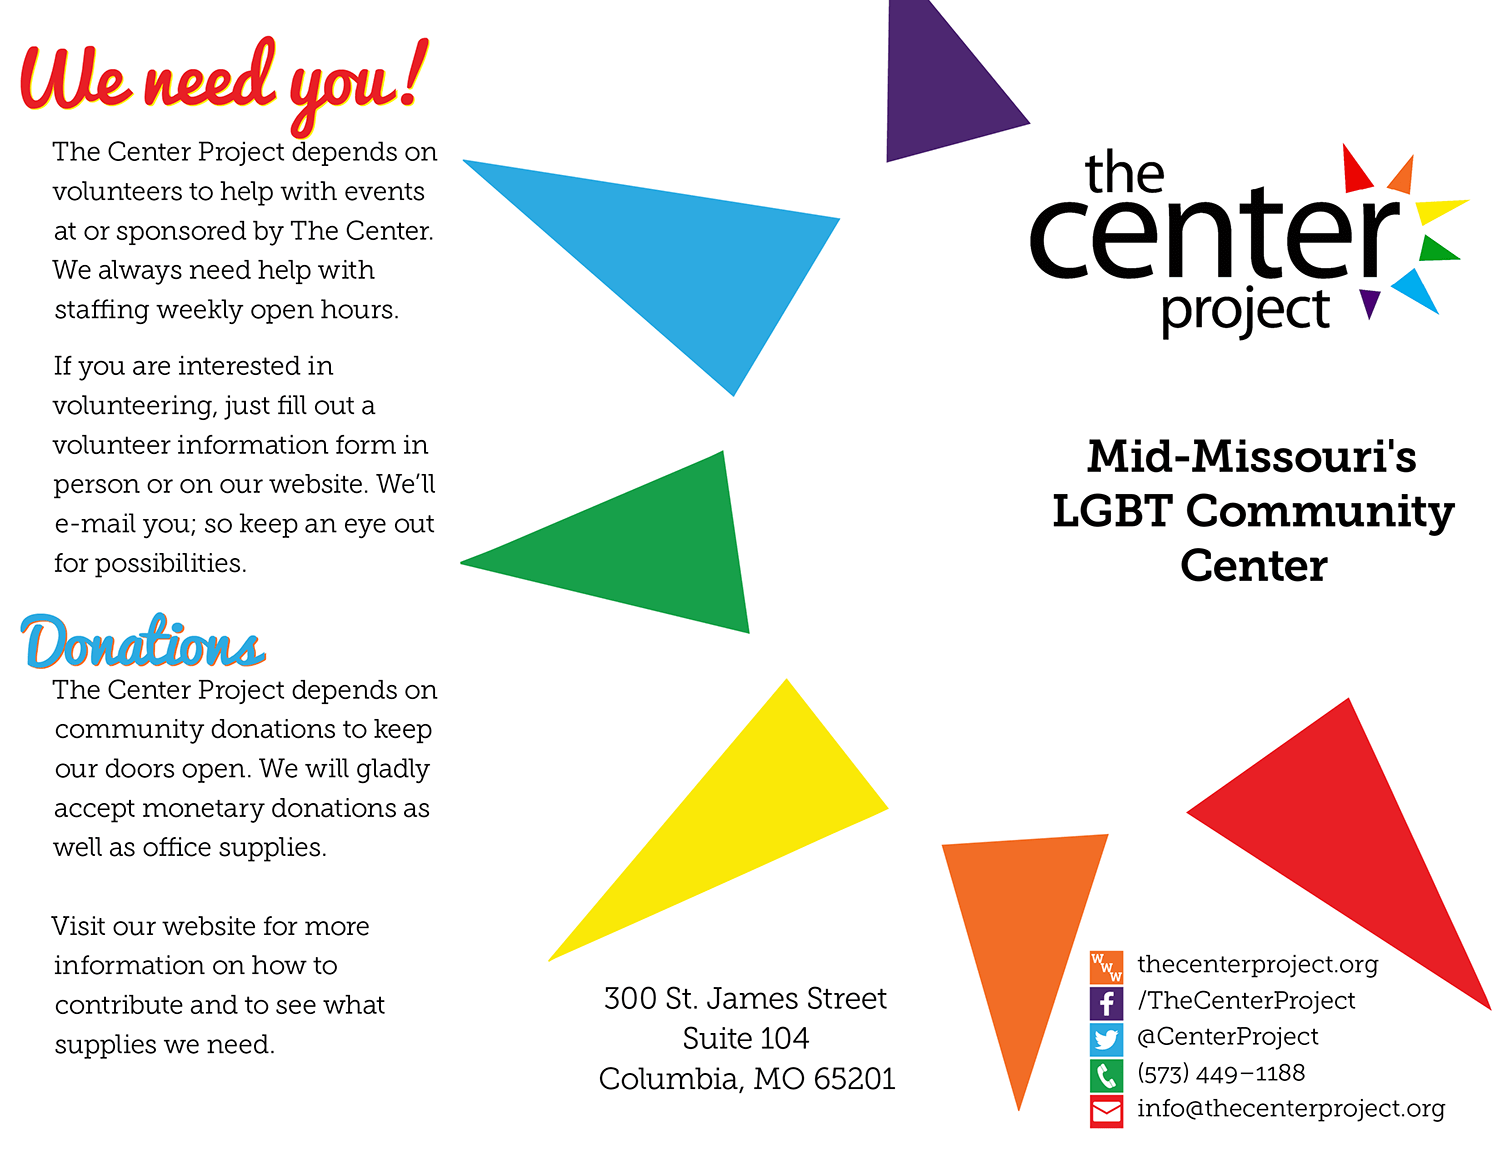 Brochure for an LGBT center in Columbia, Missouri